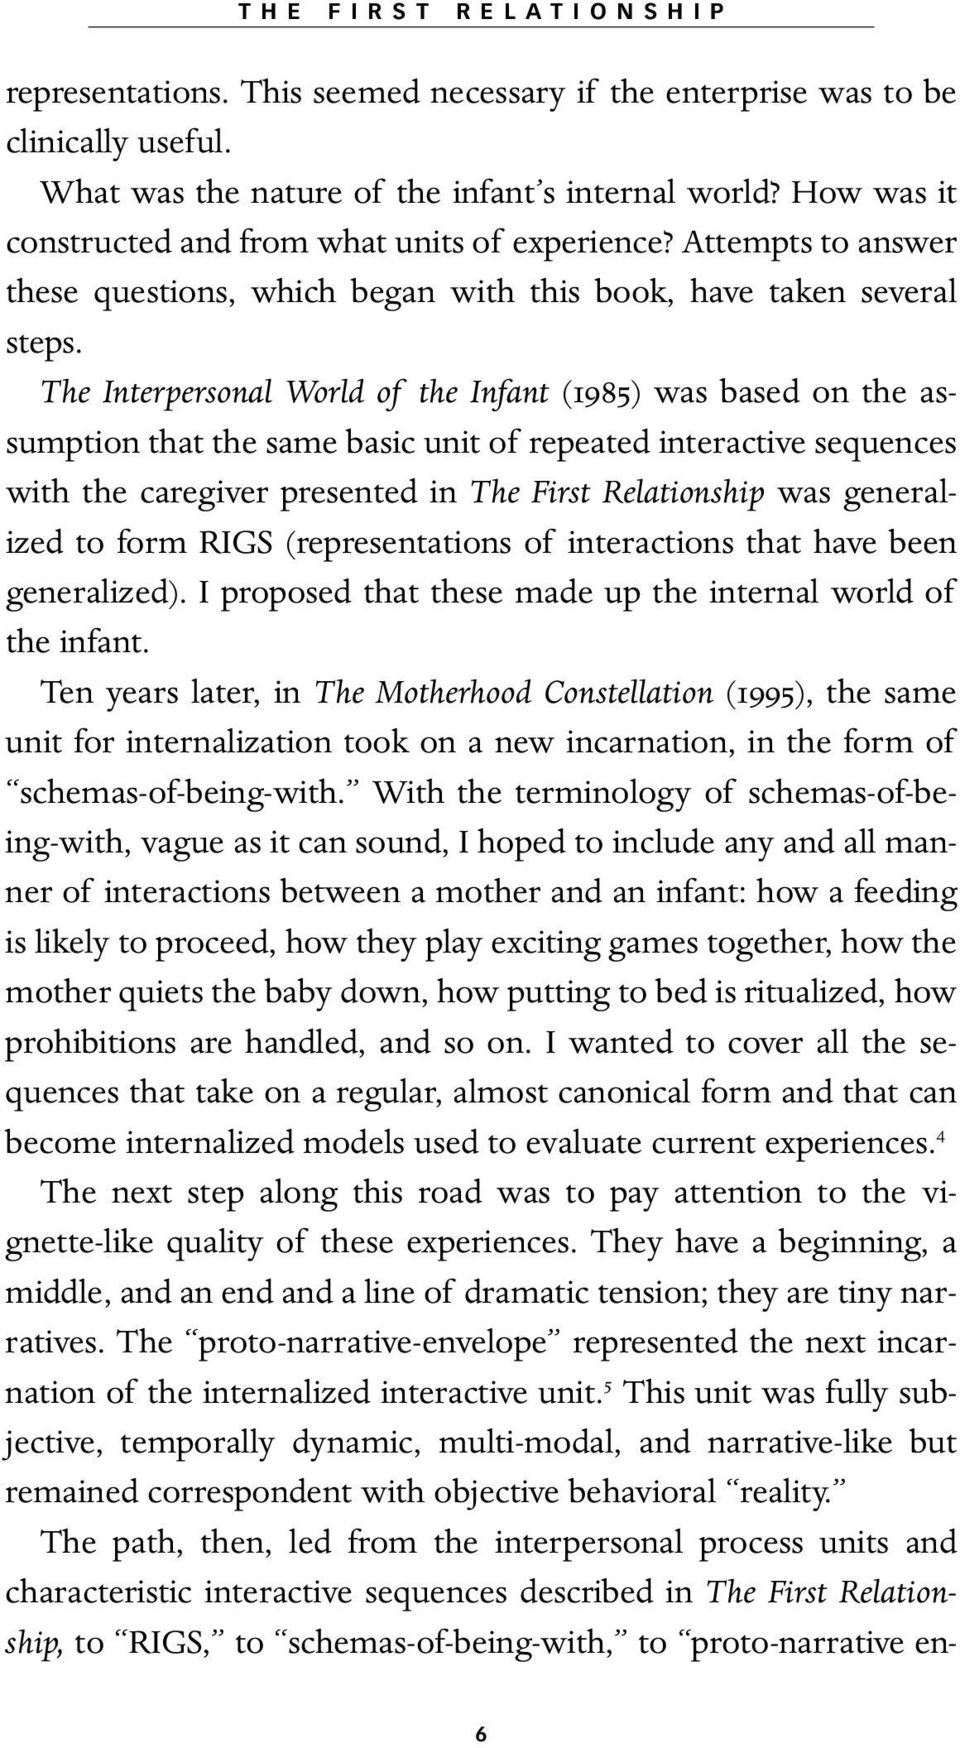 The Interpersonal World of the Infant (1985) was based on the assumption that the same basic unit of repeated interactive sequences with the caregiver presented in The First Relationship was